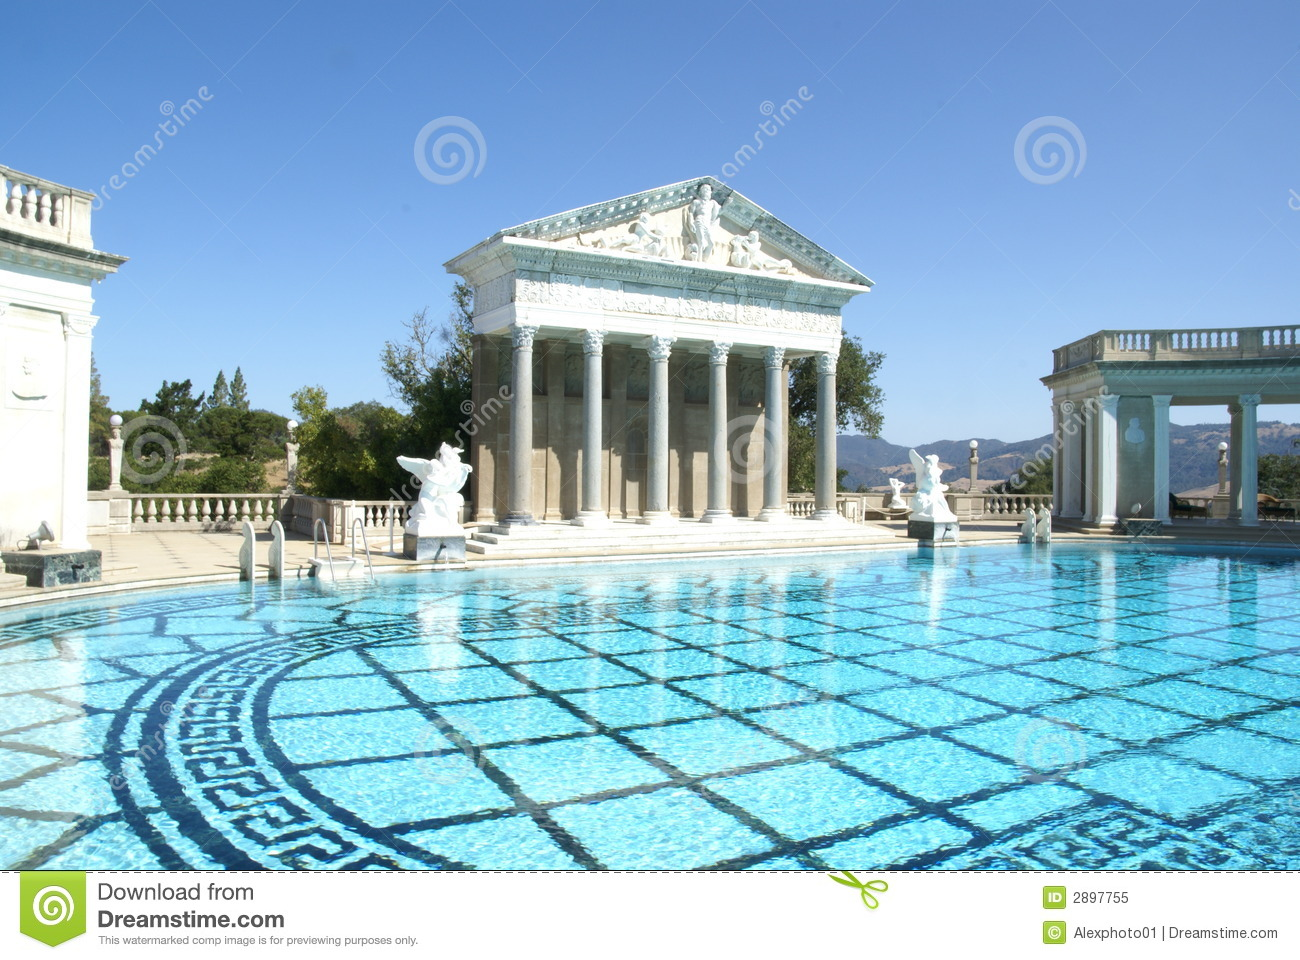 Reflecting Pool and classic Greek architecture at the J. Paul Getty ...